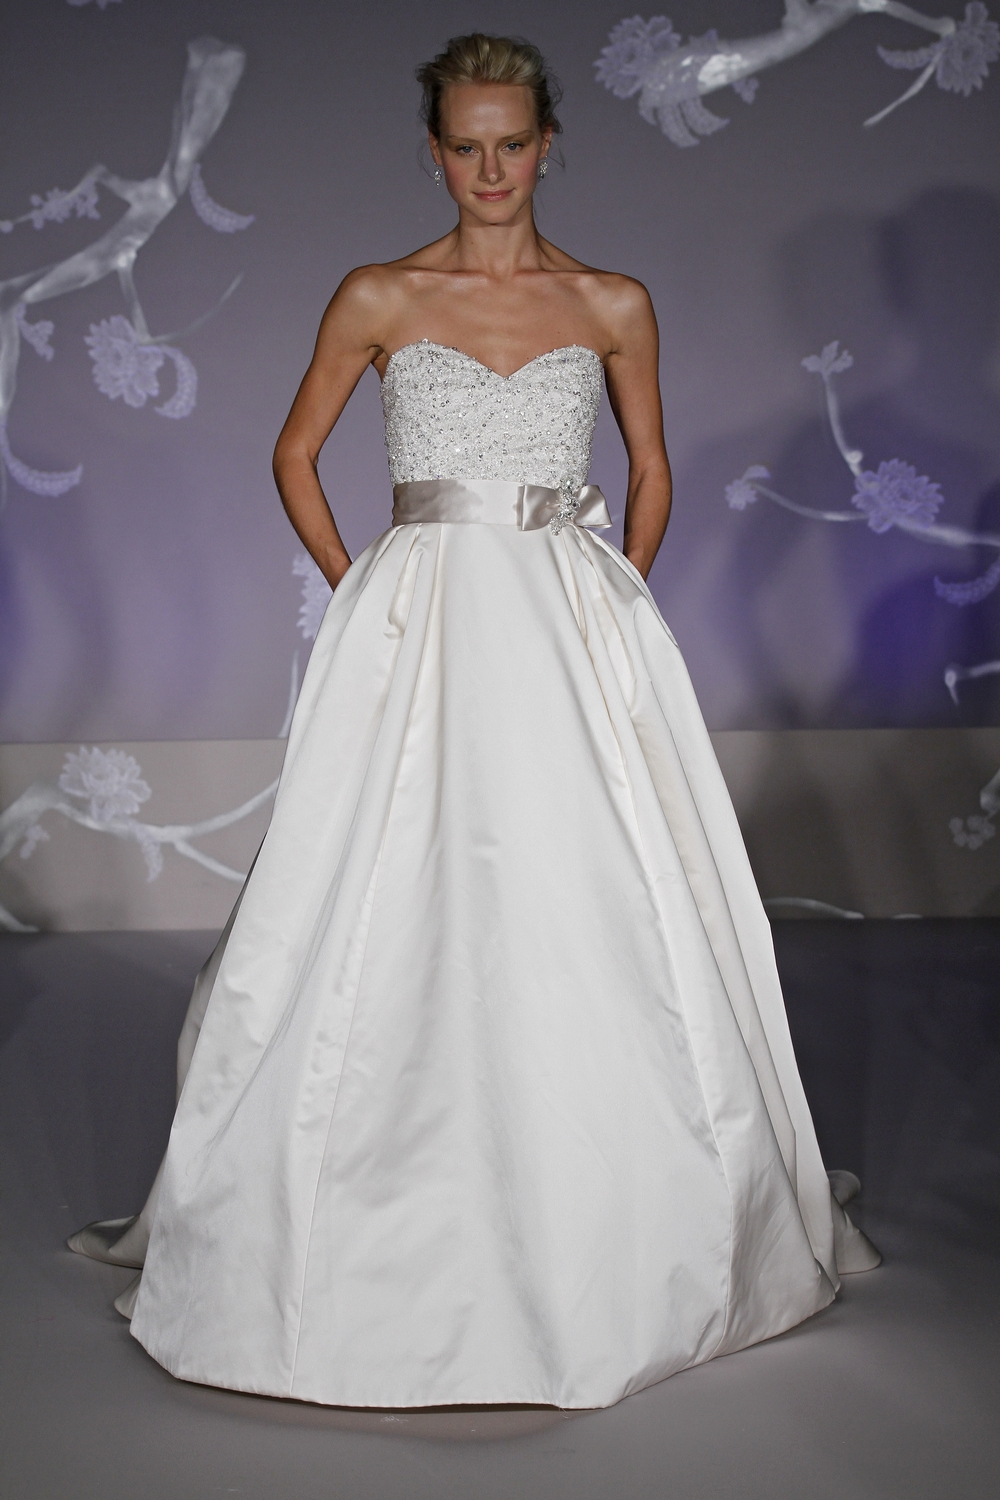 9110-spring-2011-wedding-dress-ivory-satin-back-front.original